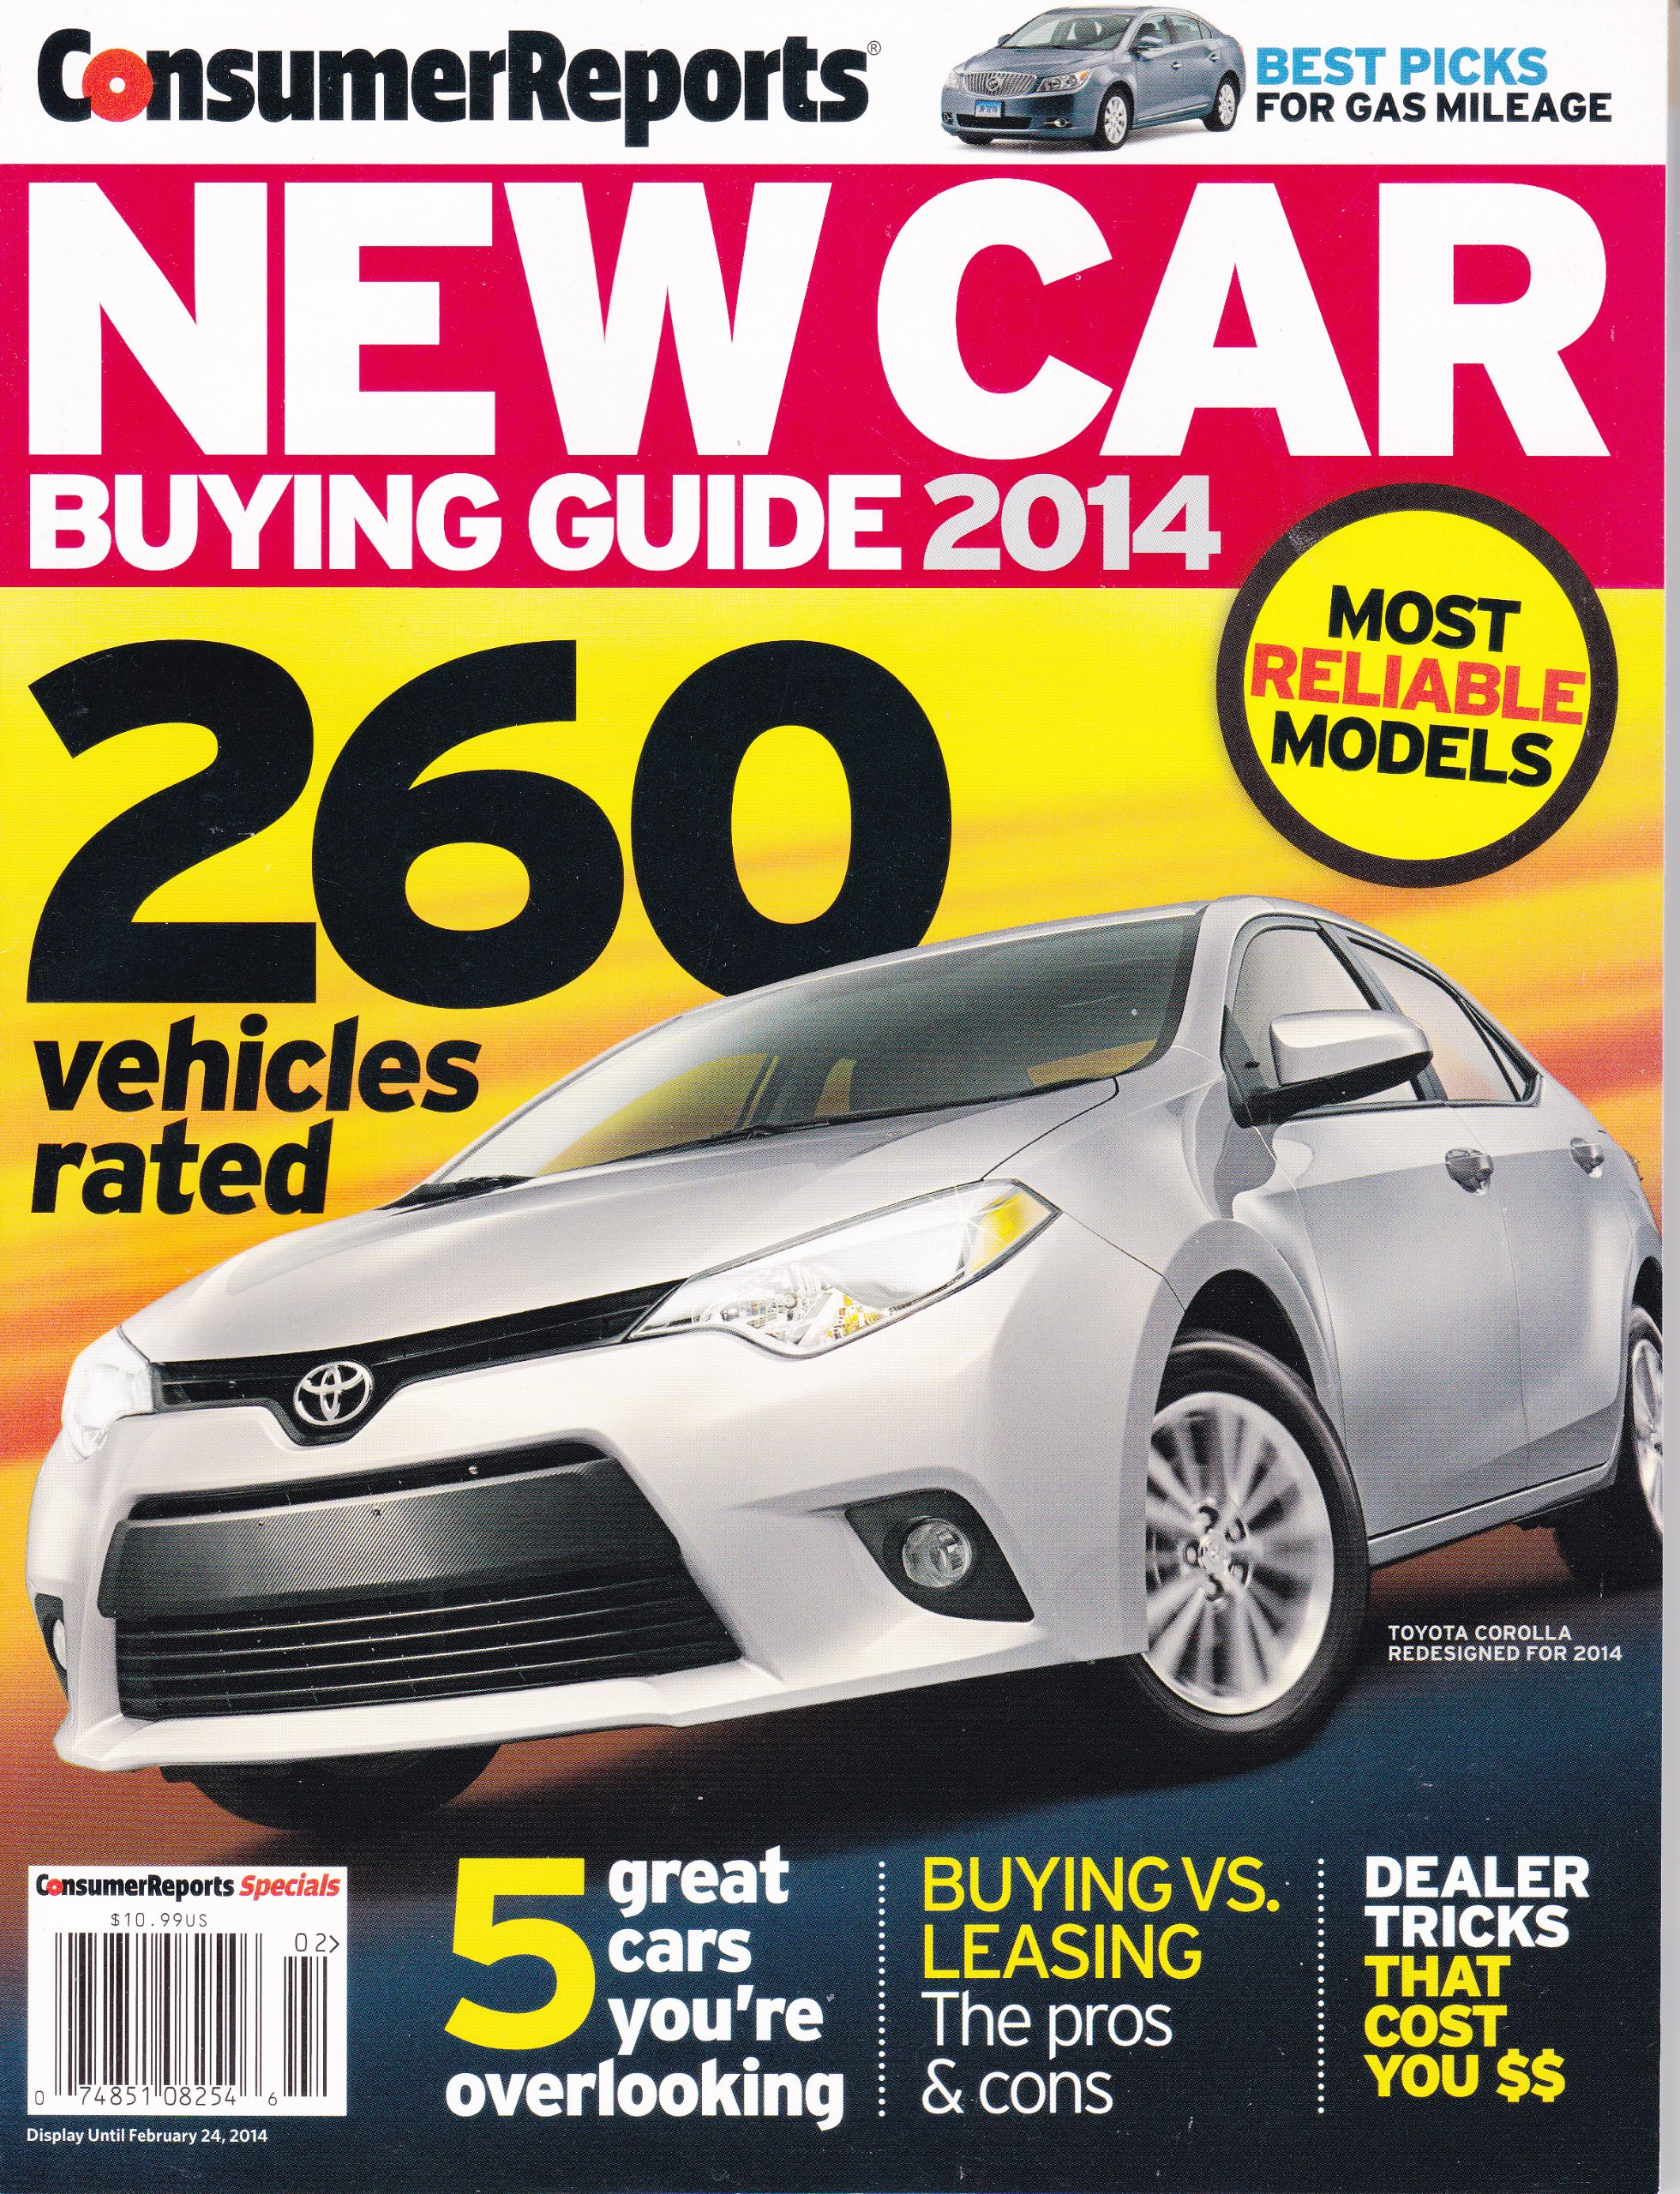 Consumer Reports Buying Guide 2014: Editors of Consumer Reports ...